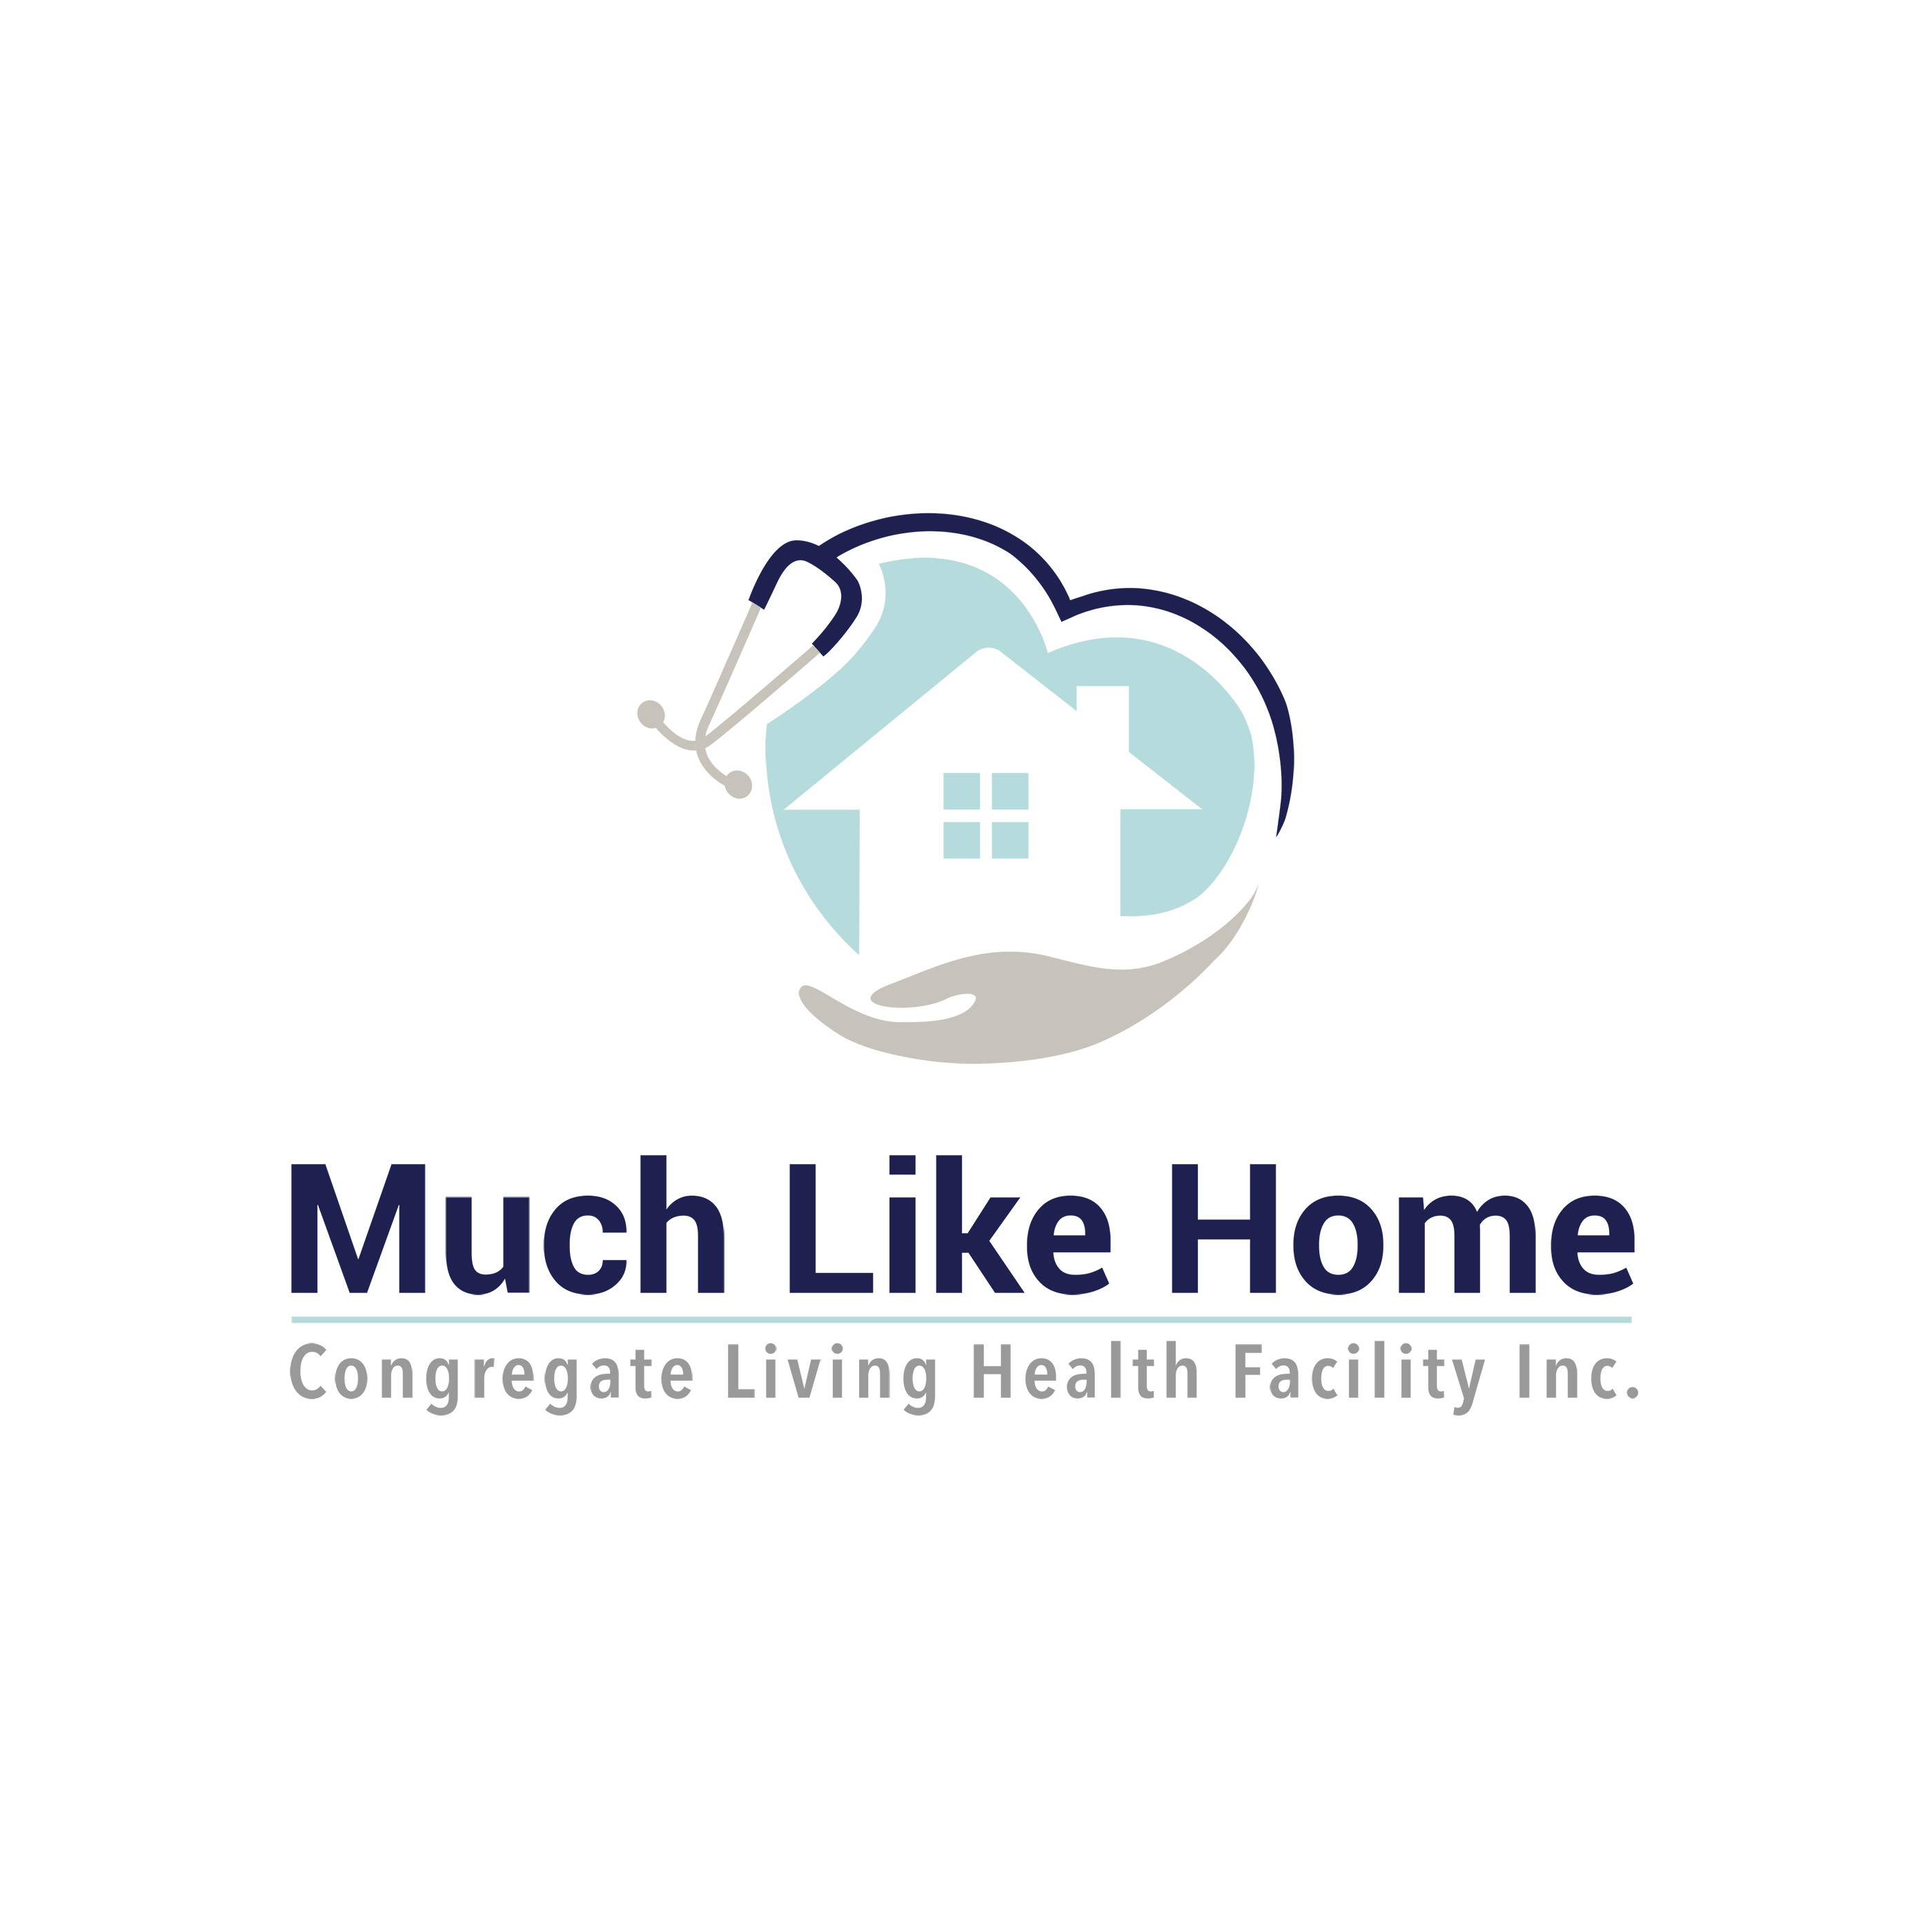 Design a healthcare appropriate logo for Much Like Home CLHF